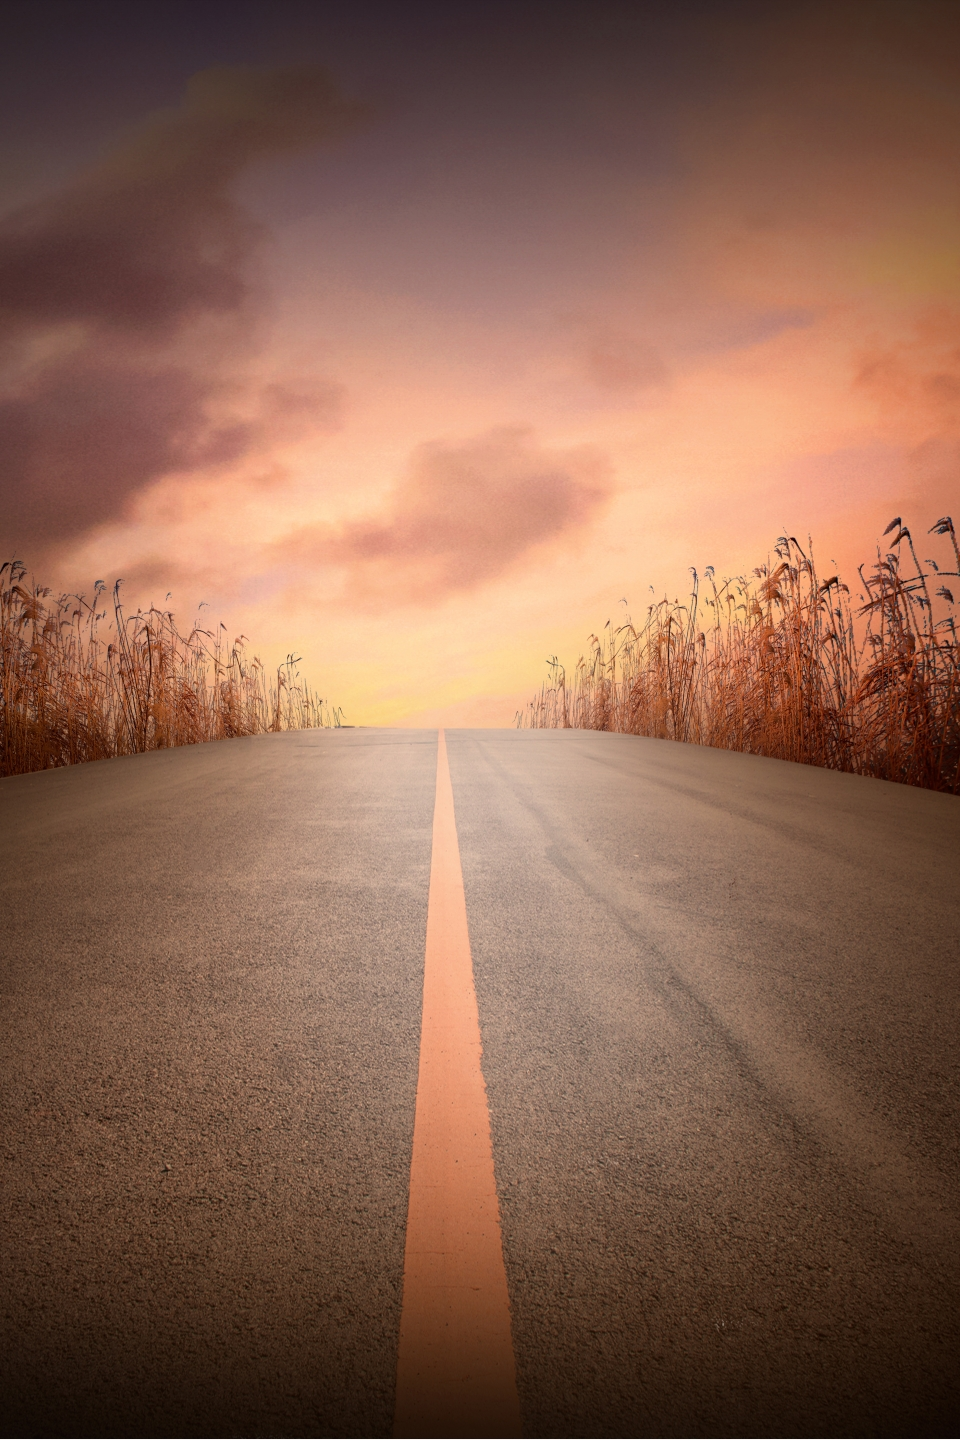 Highway Composite Background In The Sunset Sunset Road Home Background Image For Free Download